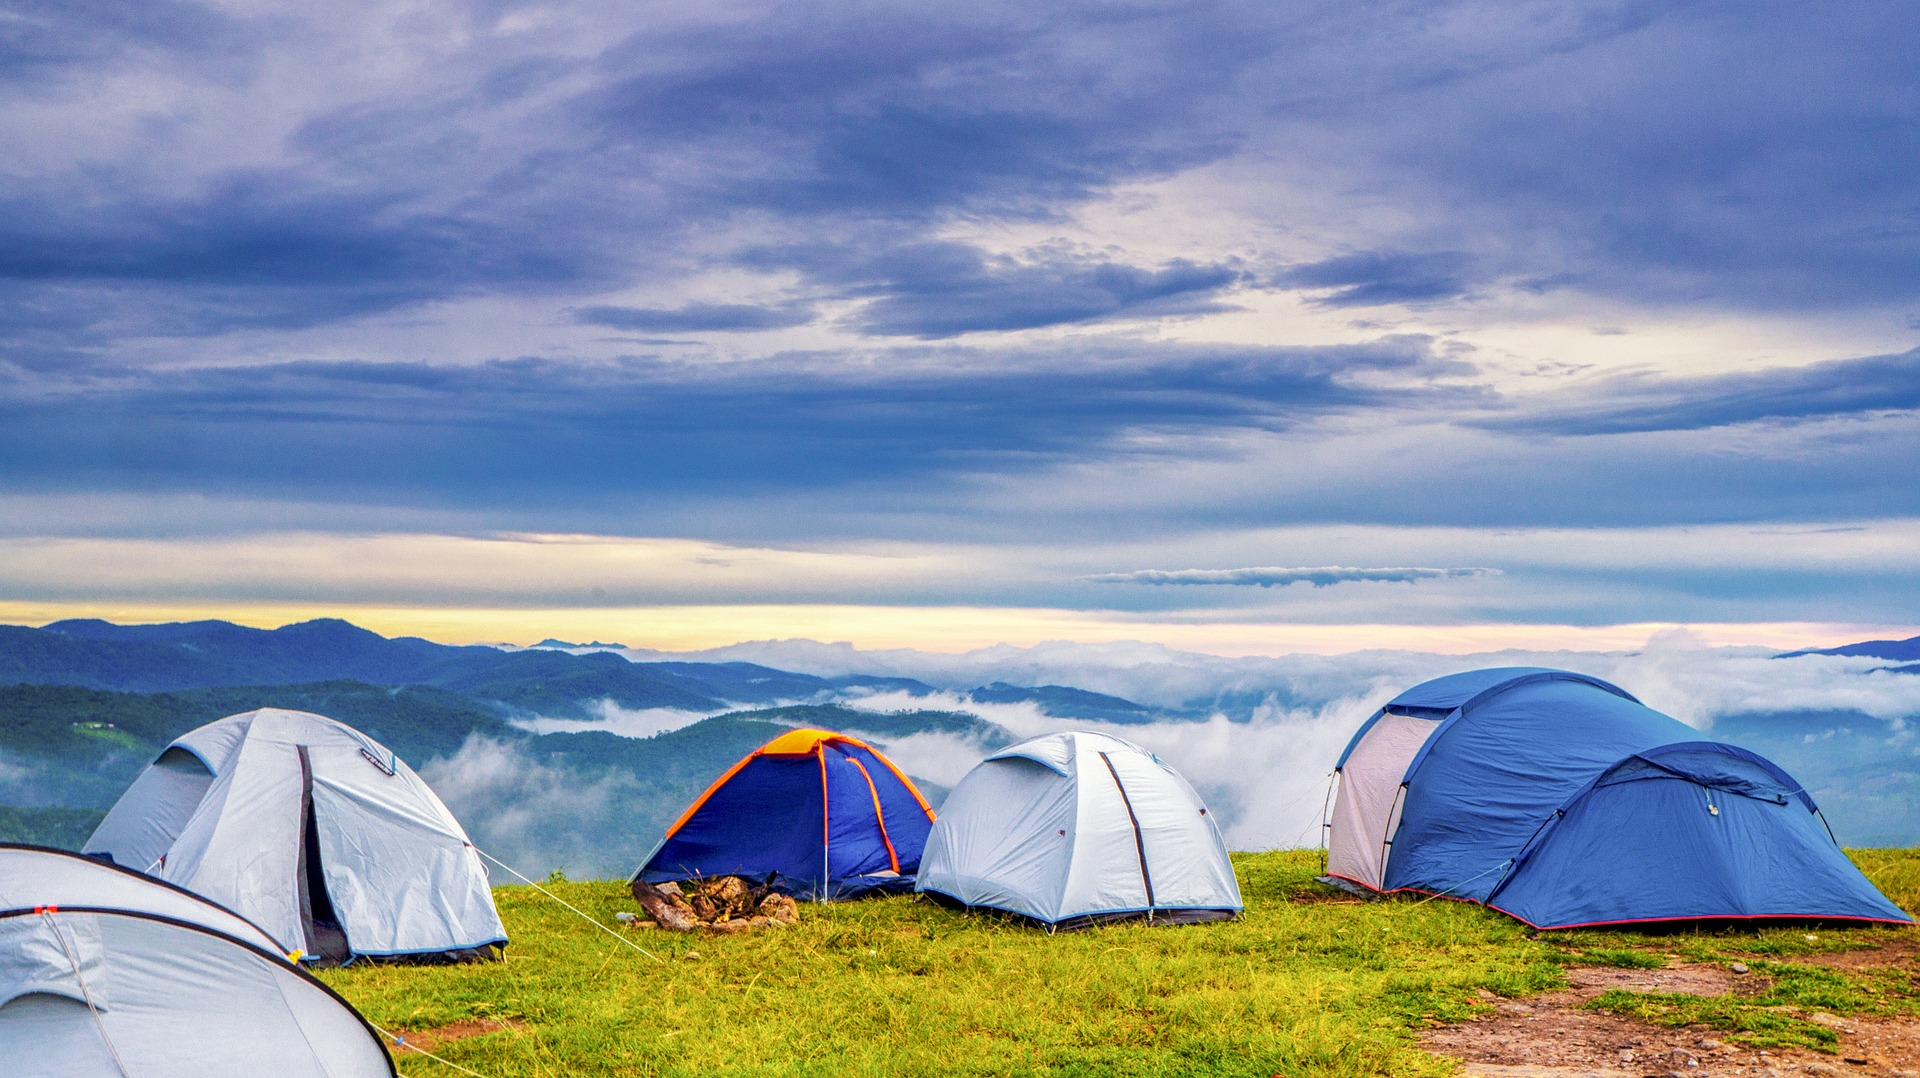 camplife, camping, hiking, trekking, backpack, mountain climbing, alpinism, wilderness, remote nature, important camping tips, guide